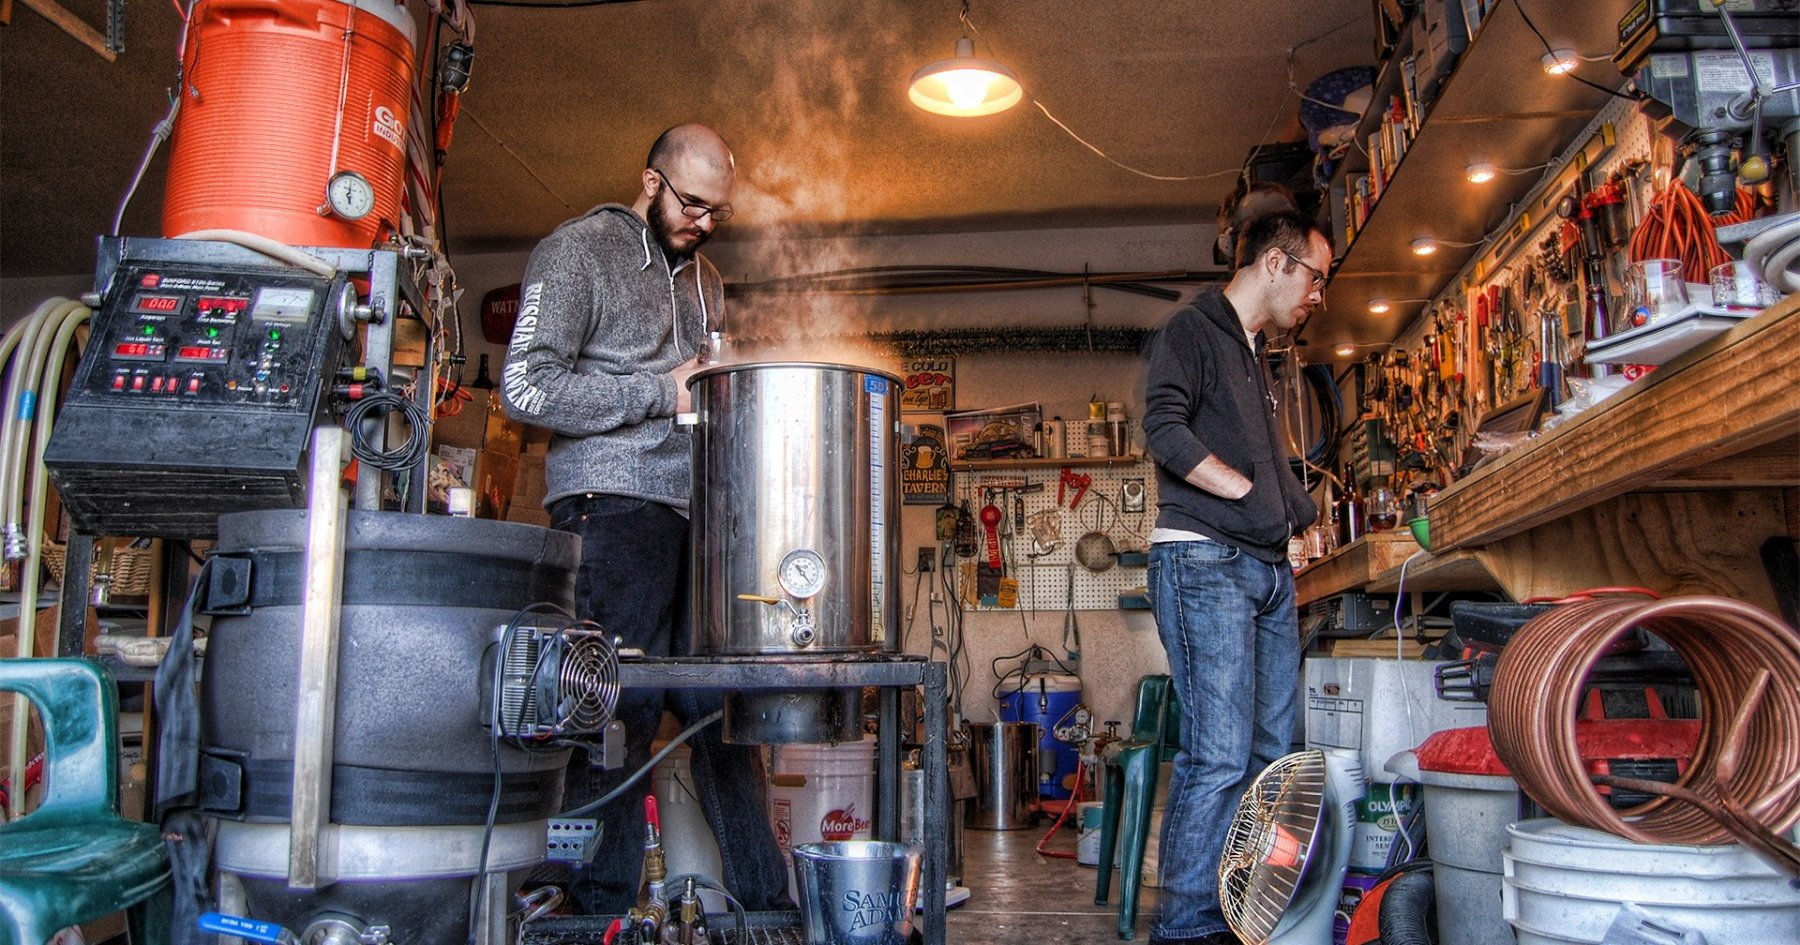 Home Distilling Is Illegal but Here's How to Do It Anyway